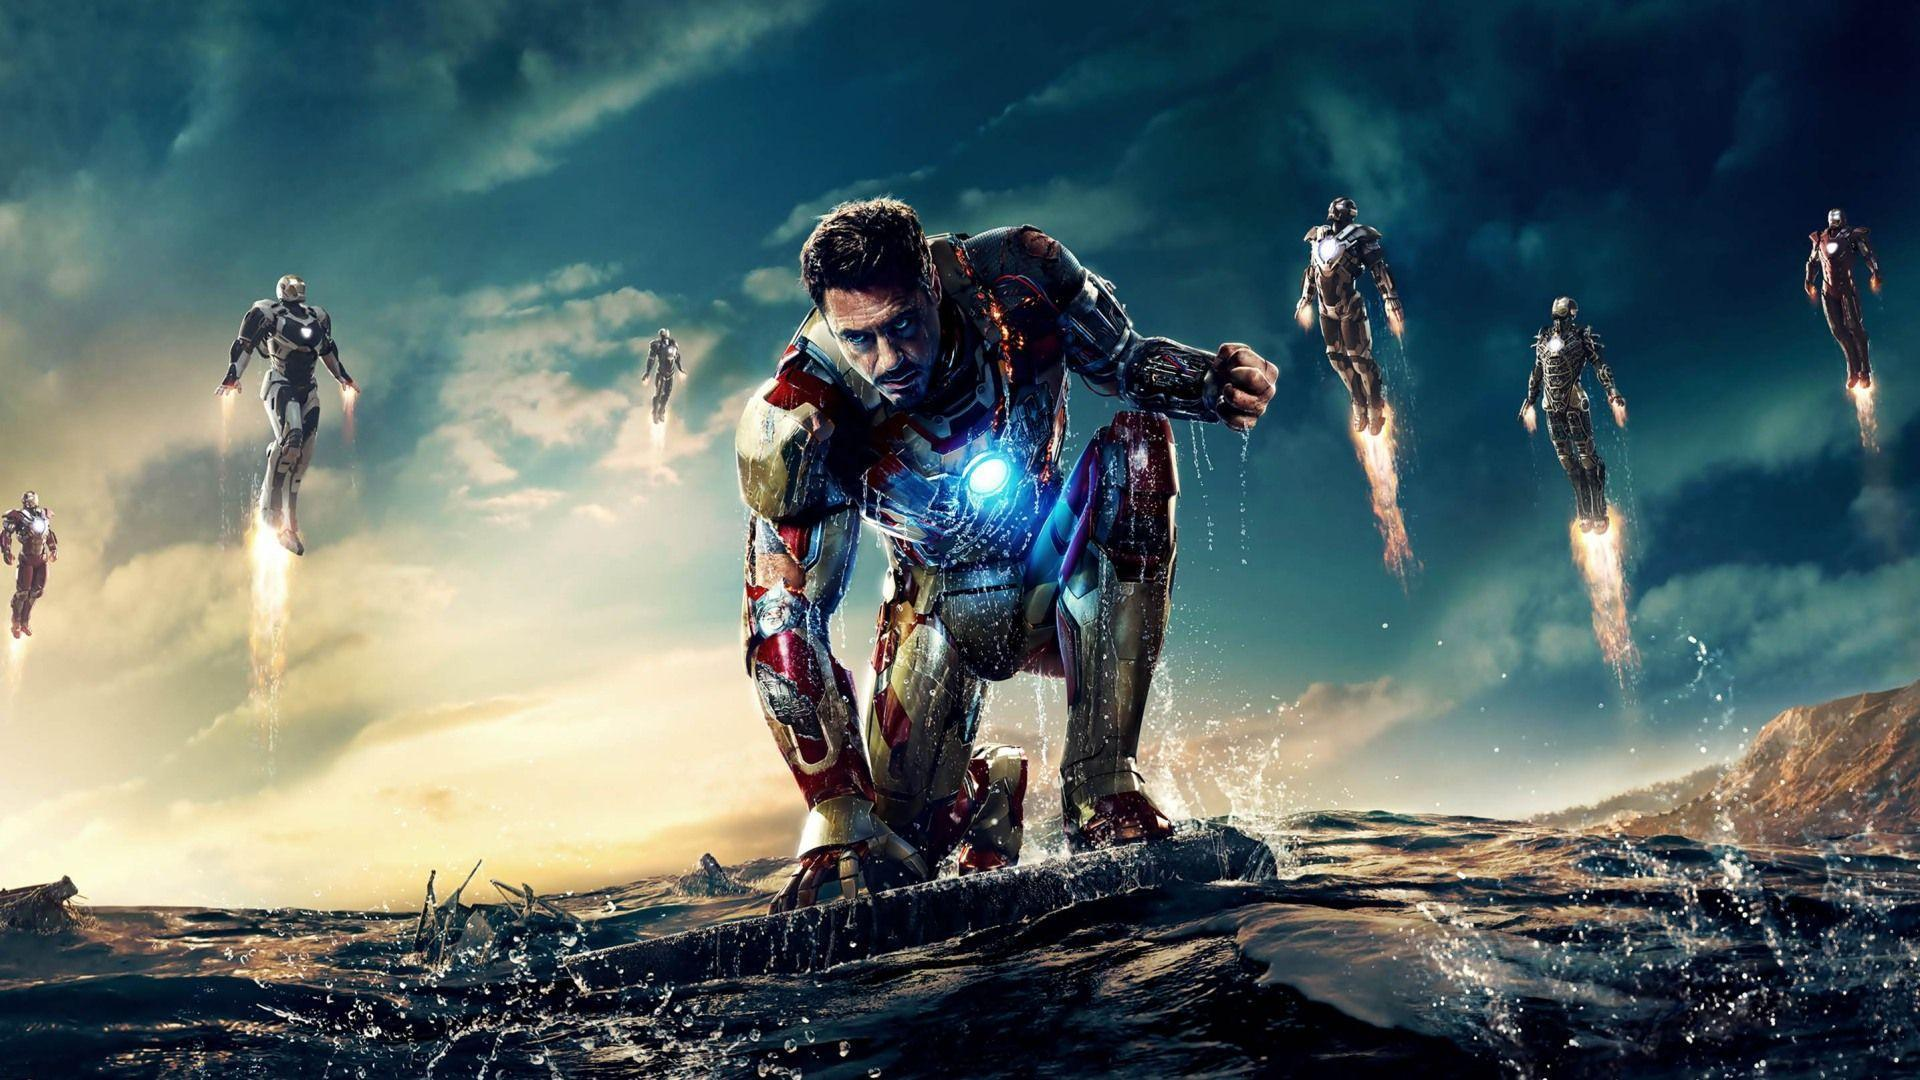 Iron Man 3 Wallpaper 45 PC Images In New Collection